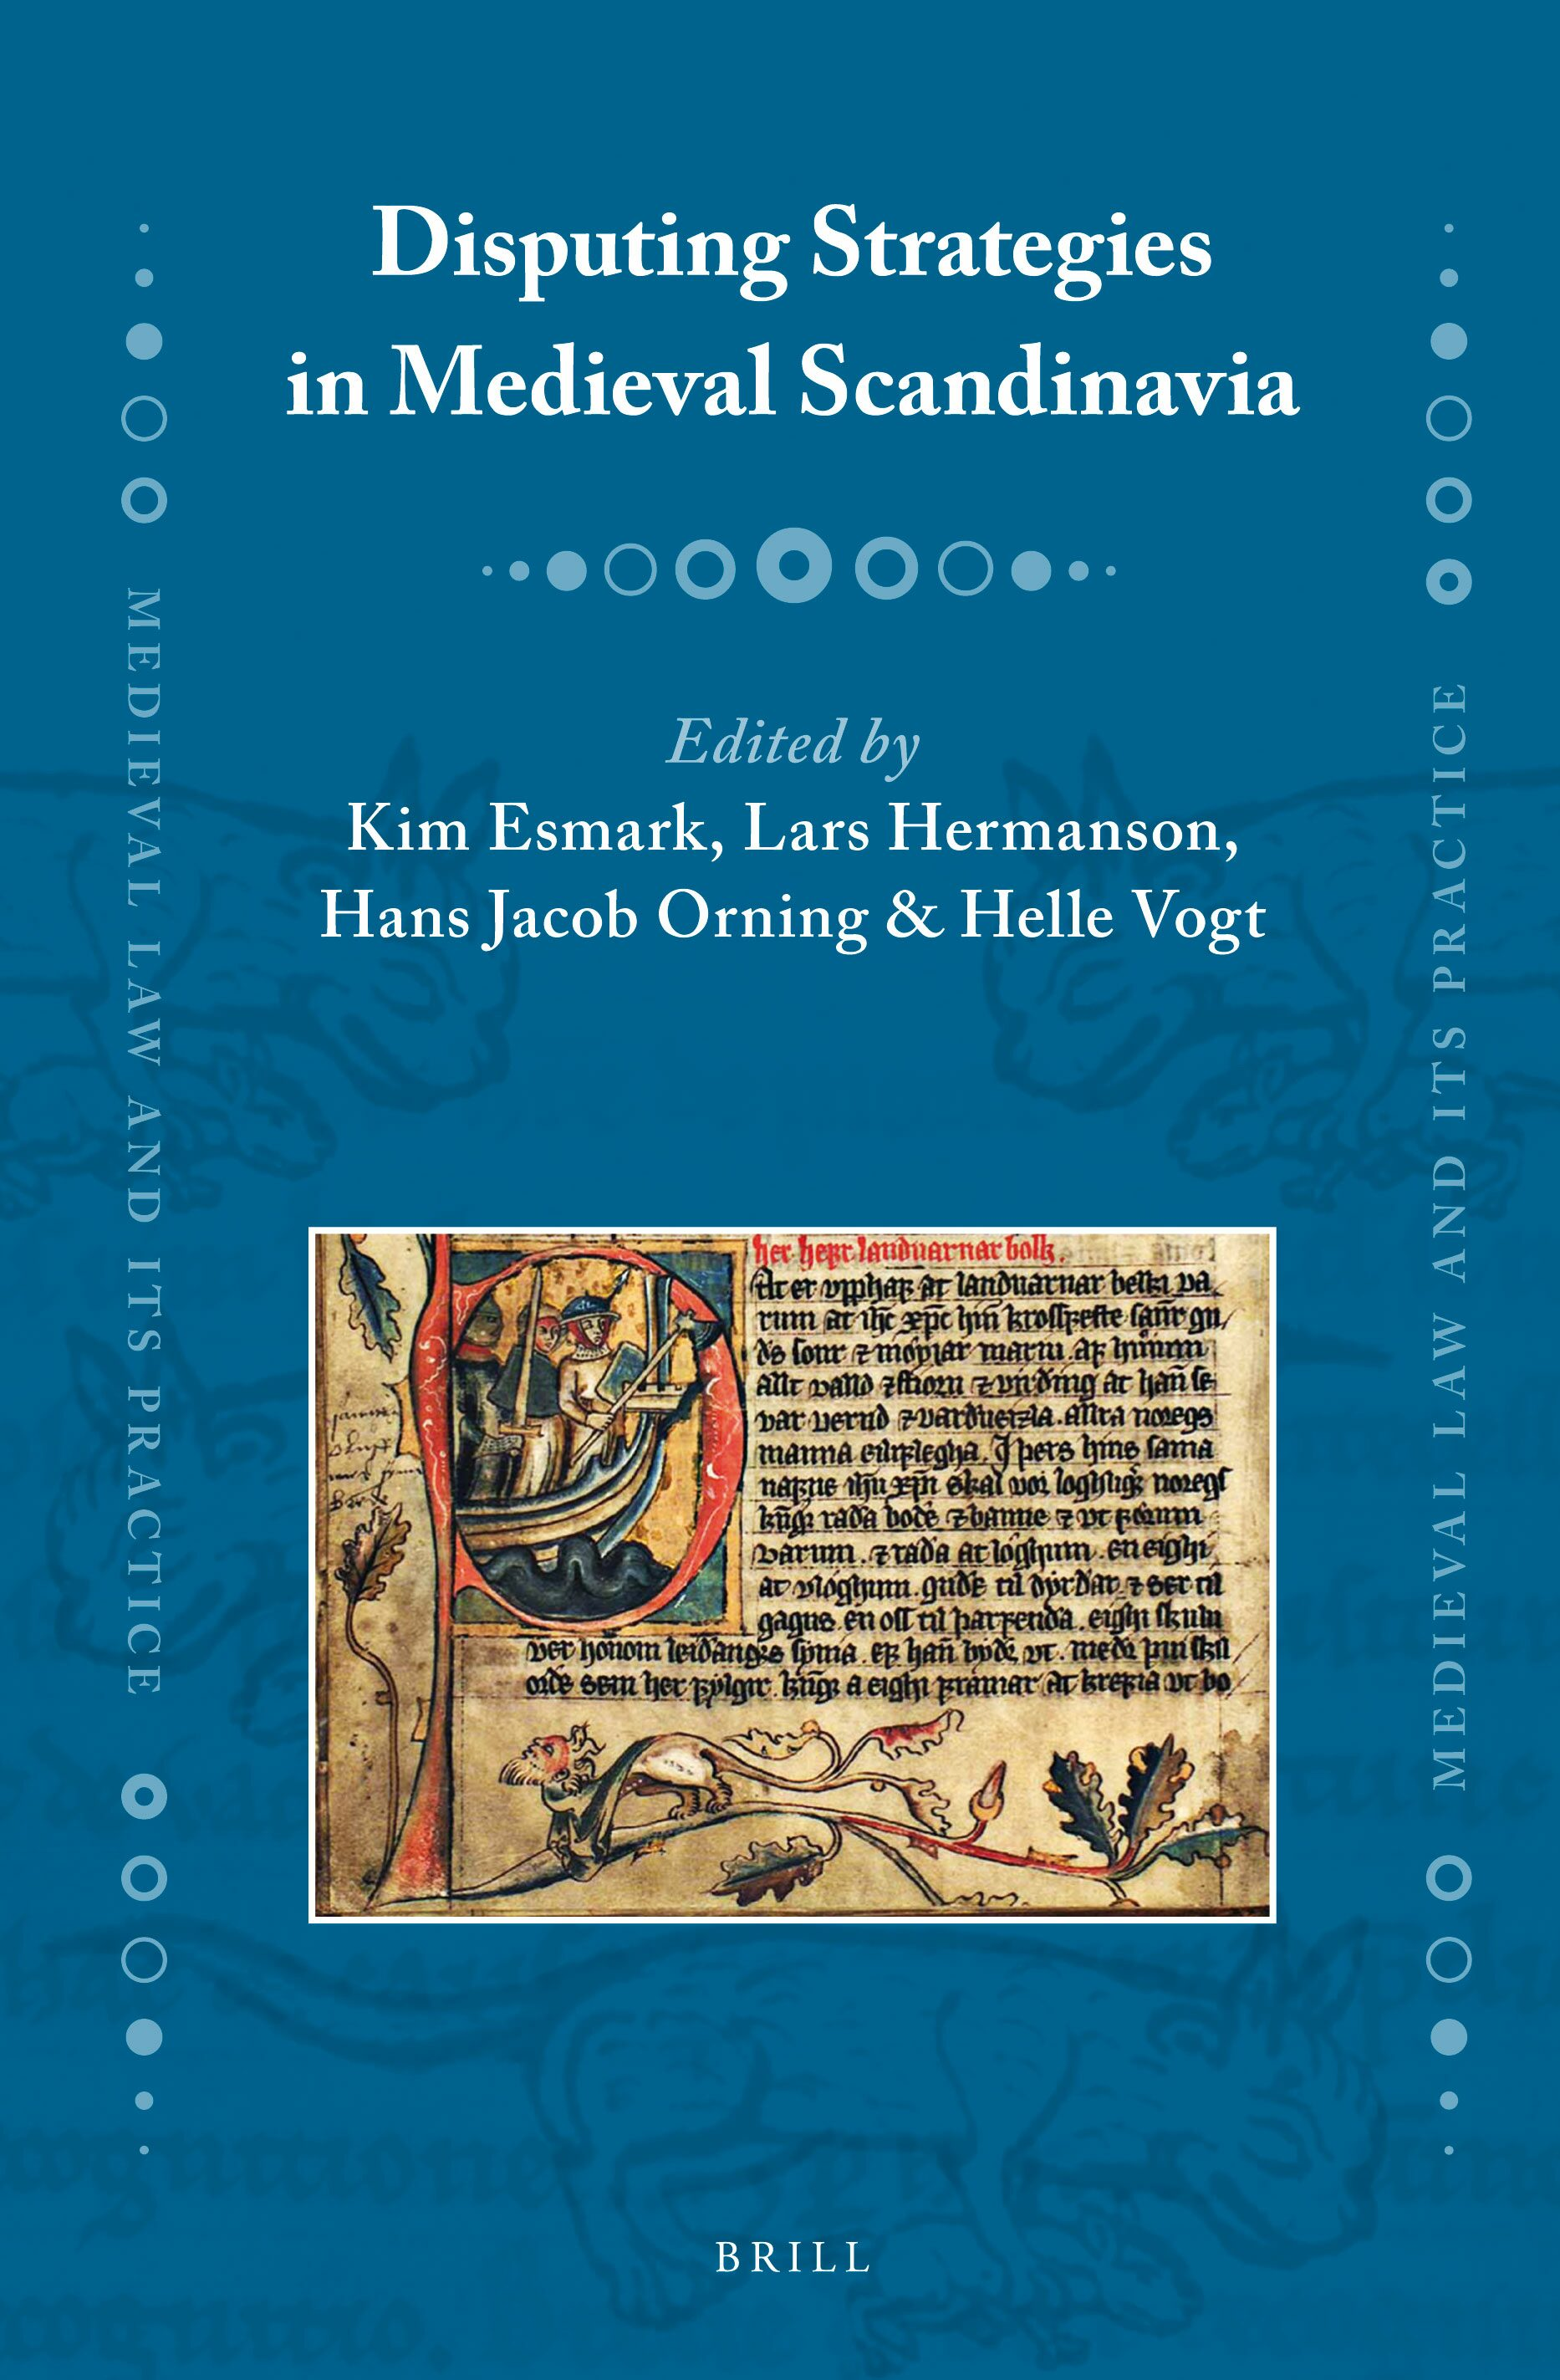 Legal Procedure and Practice in Medieval Denmark (Medieval Law and Its Practice)